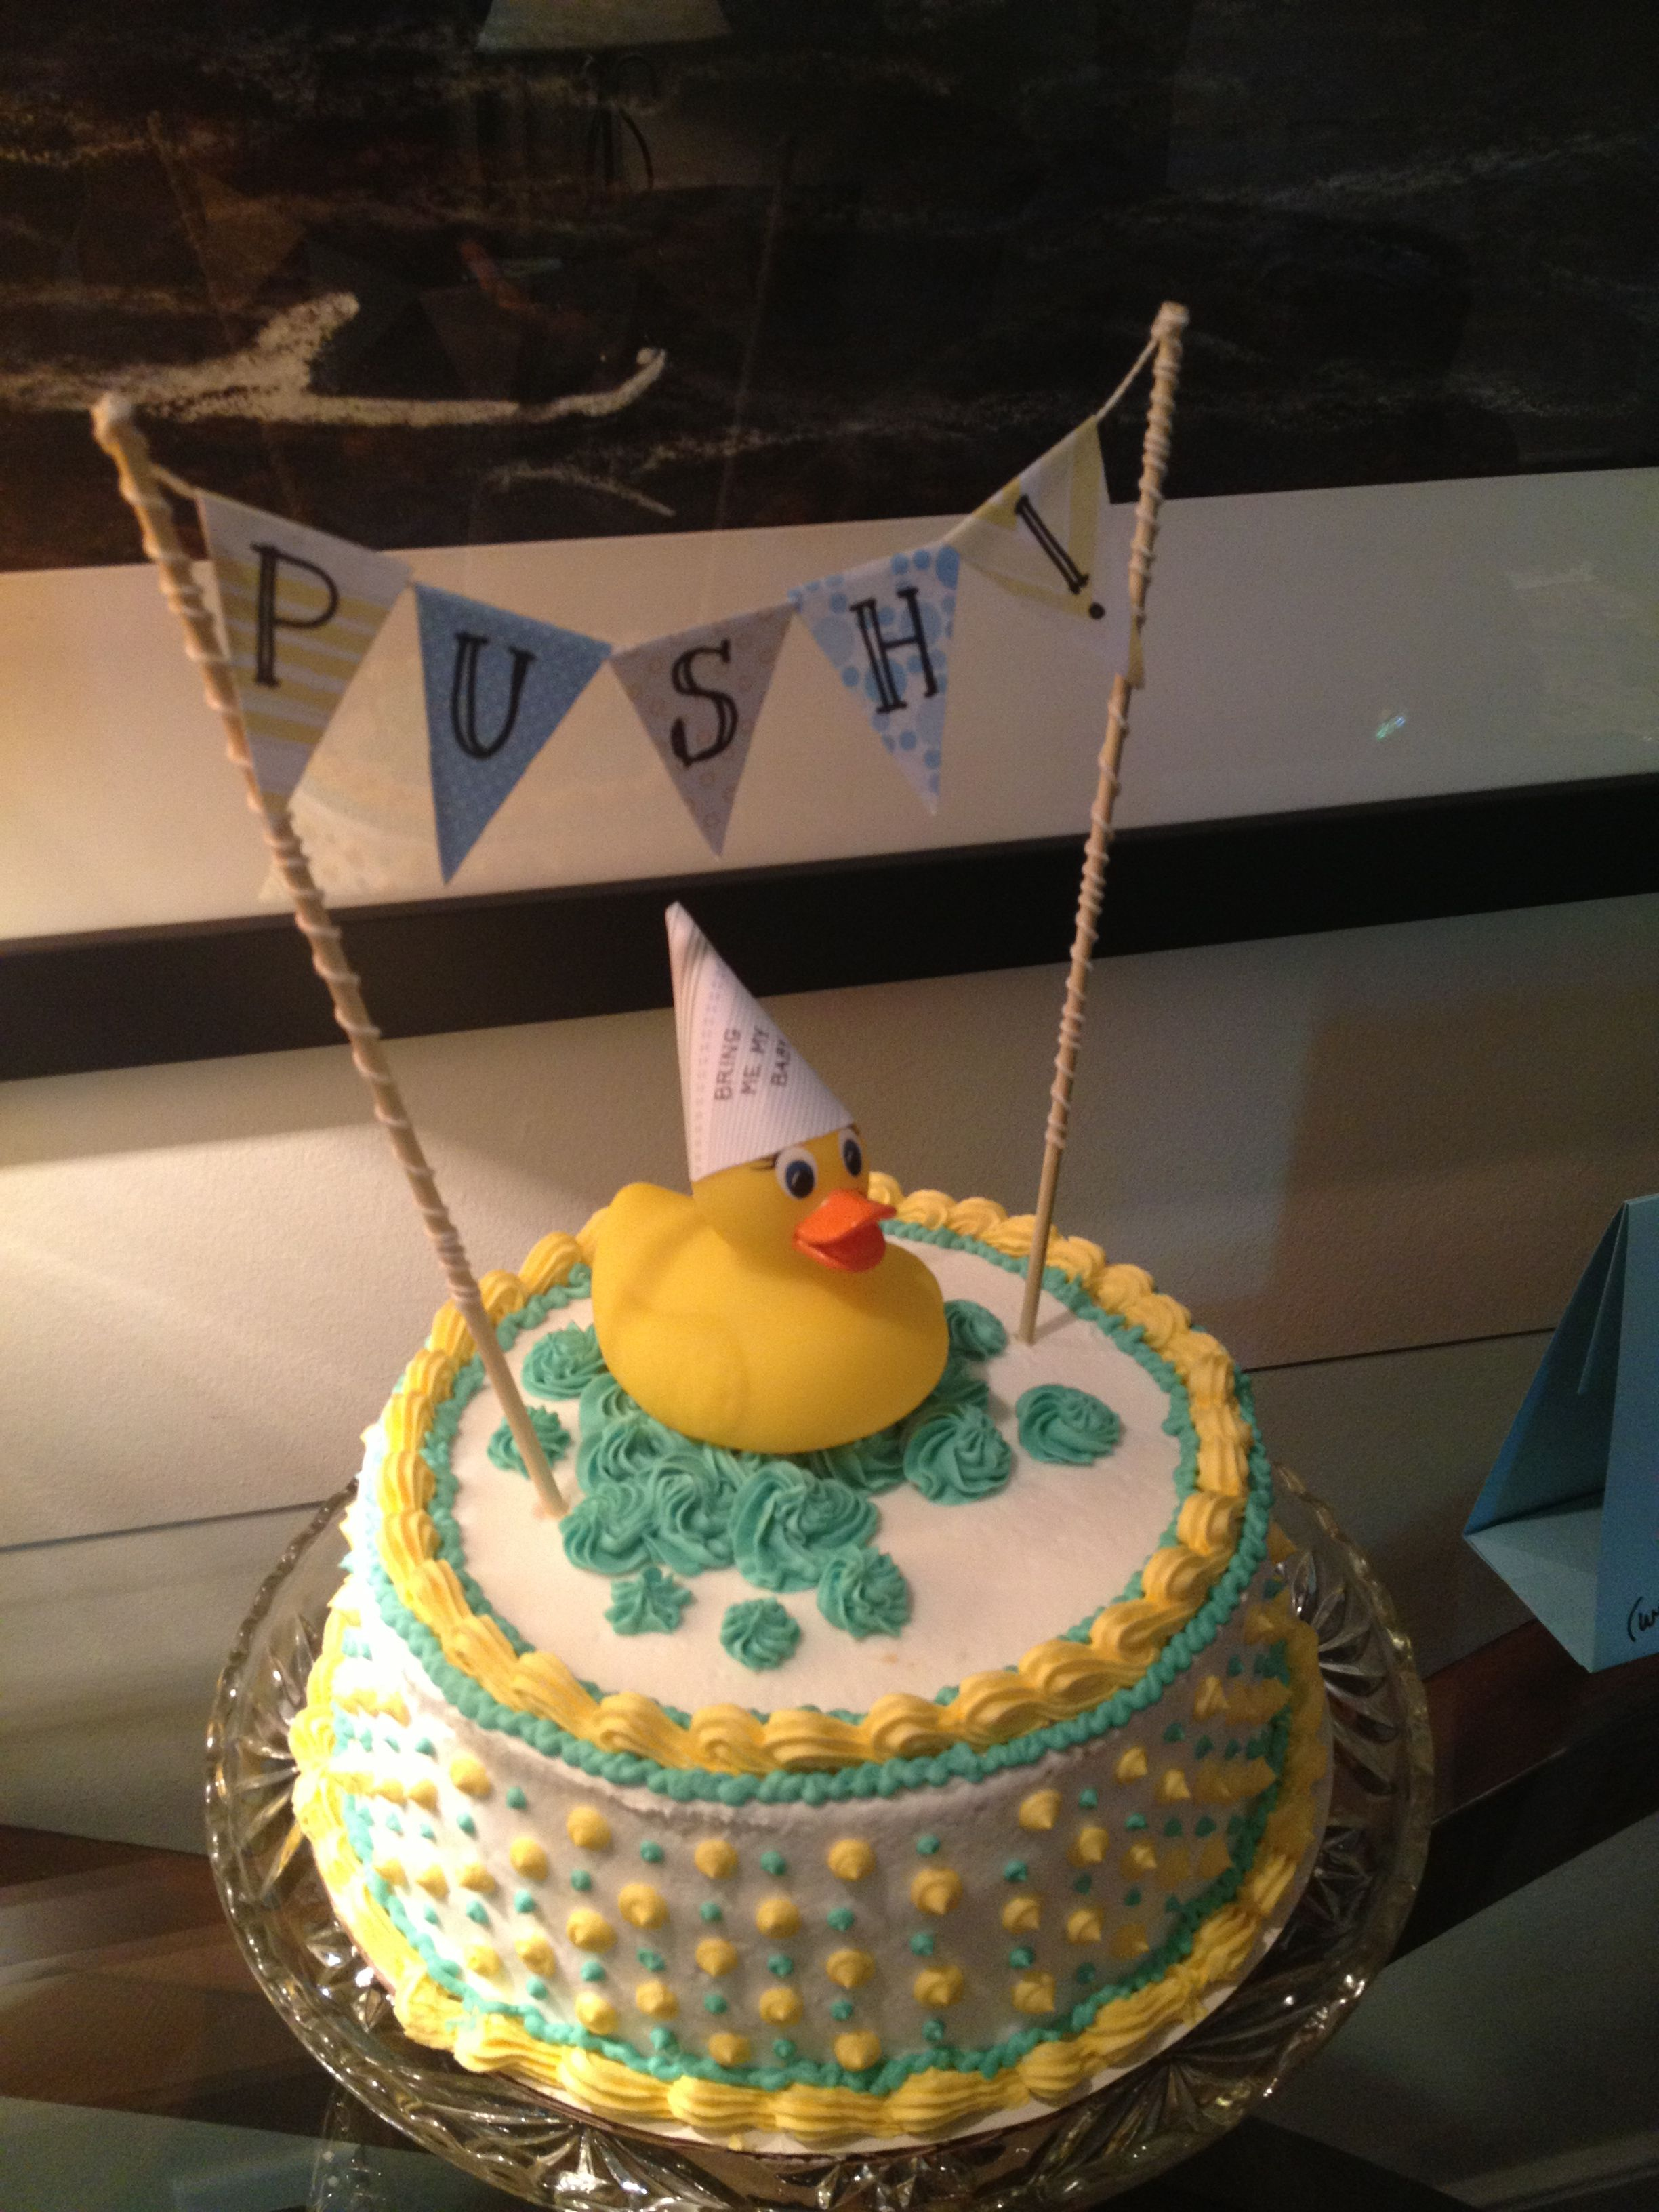 Baby Shower Cake With Rubber Duck And Pennants